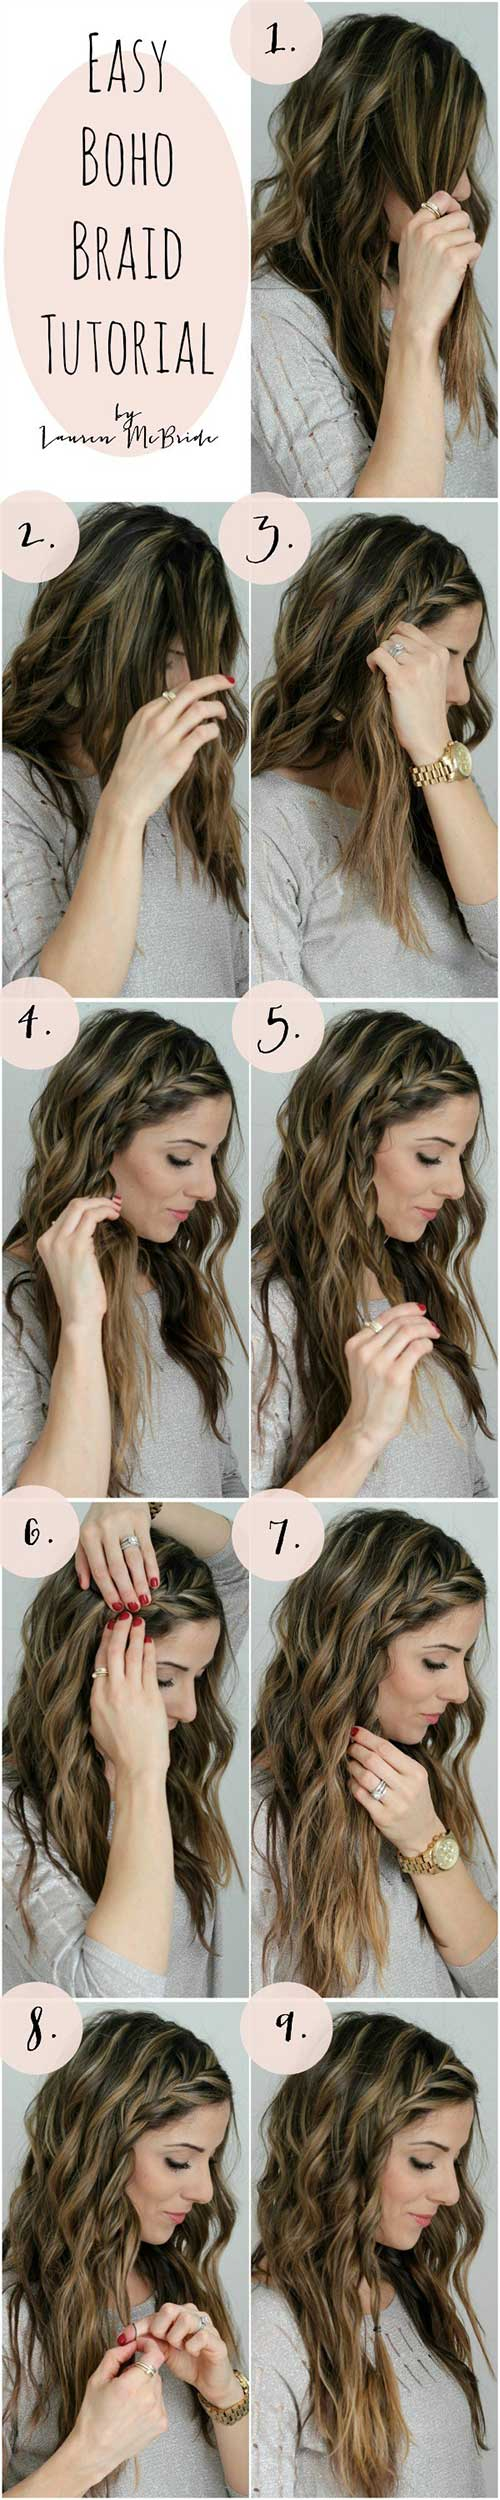 Easy-Boho-Braid Awesome Hairstyles For Girls With Long Hair